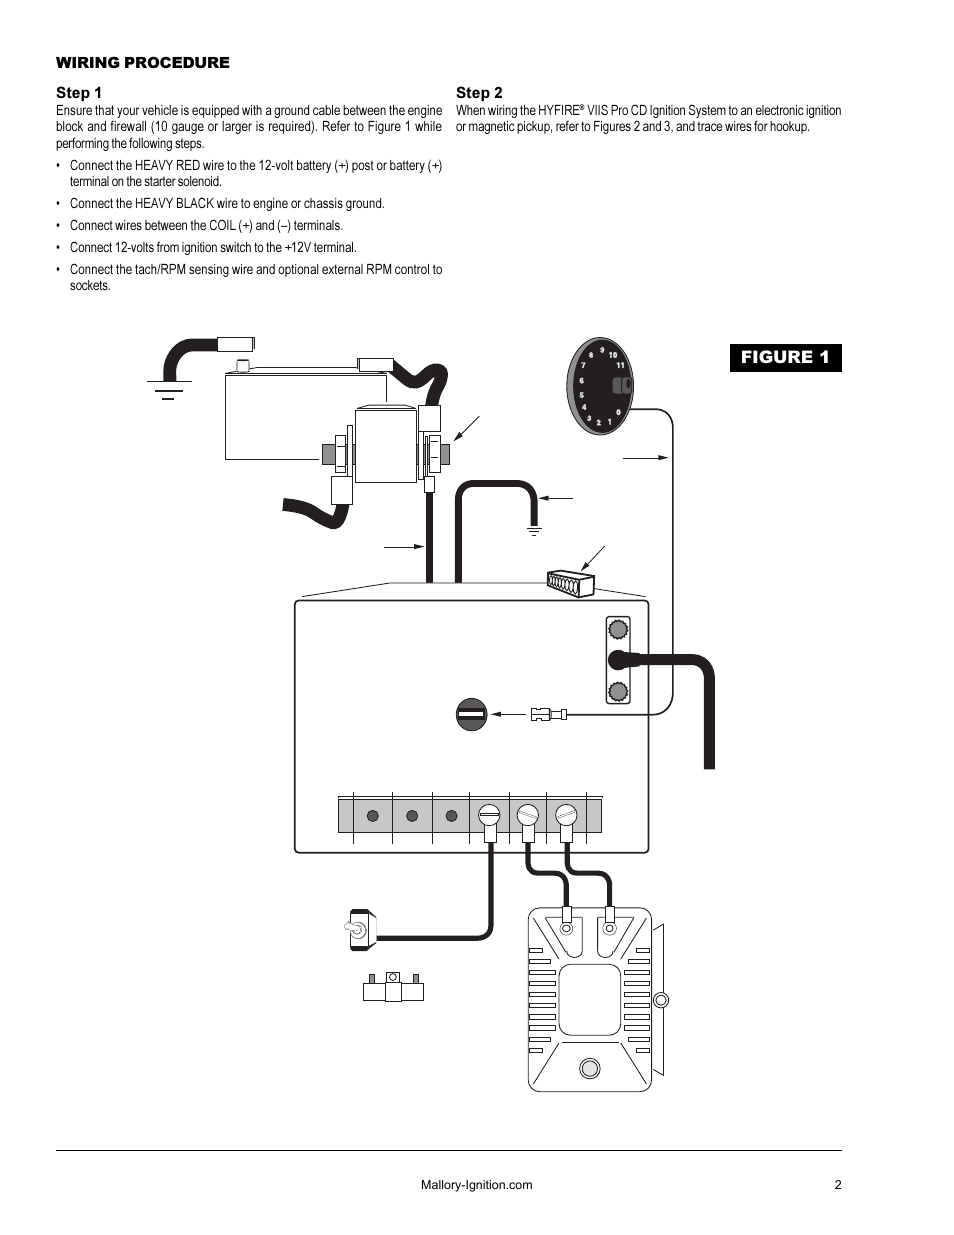 Exelent Mallory Ignition Wiring Diagram Component - Best Images for ...